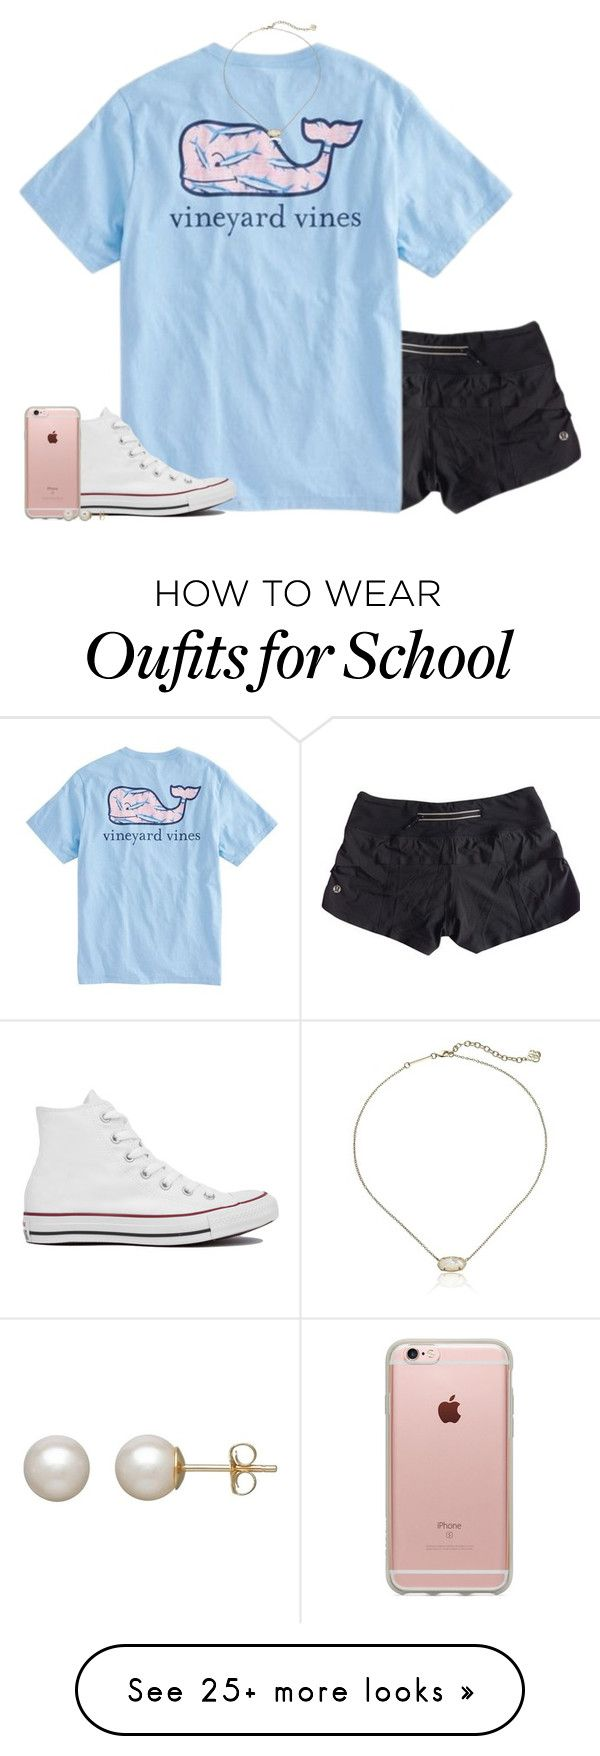 """every girl at my school"" by conleighh on Polyvore featuring lululemon, Vineyard Vines, Converse, Incase, Honora and Kendra Scott"